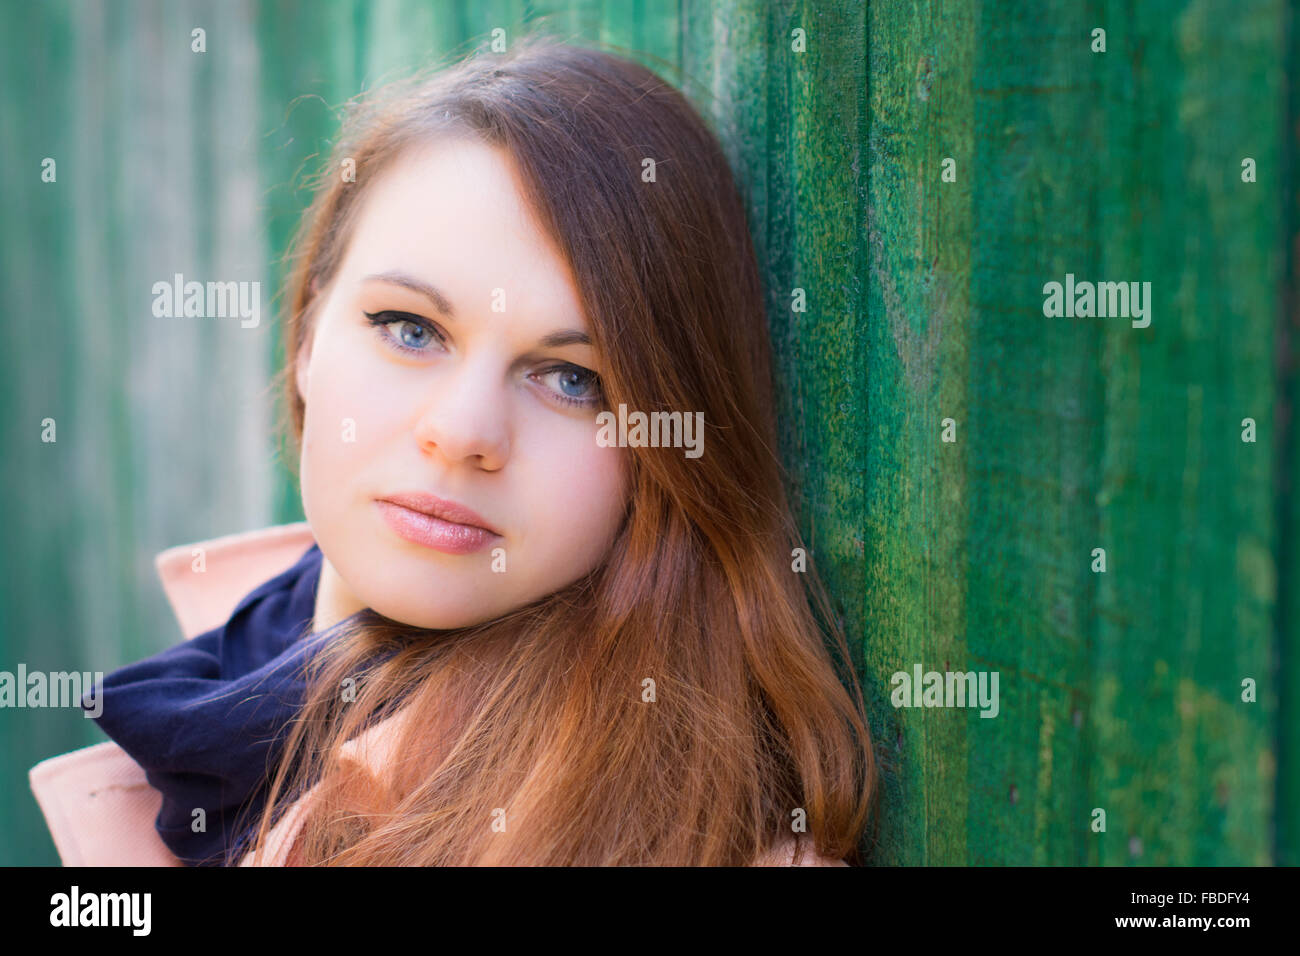 Close-Up Portrait Of A Serious Young Woman - Stock Image